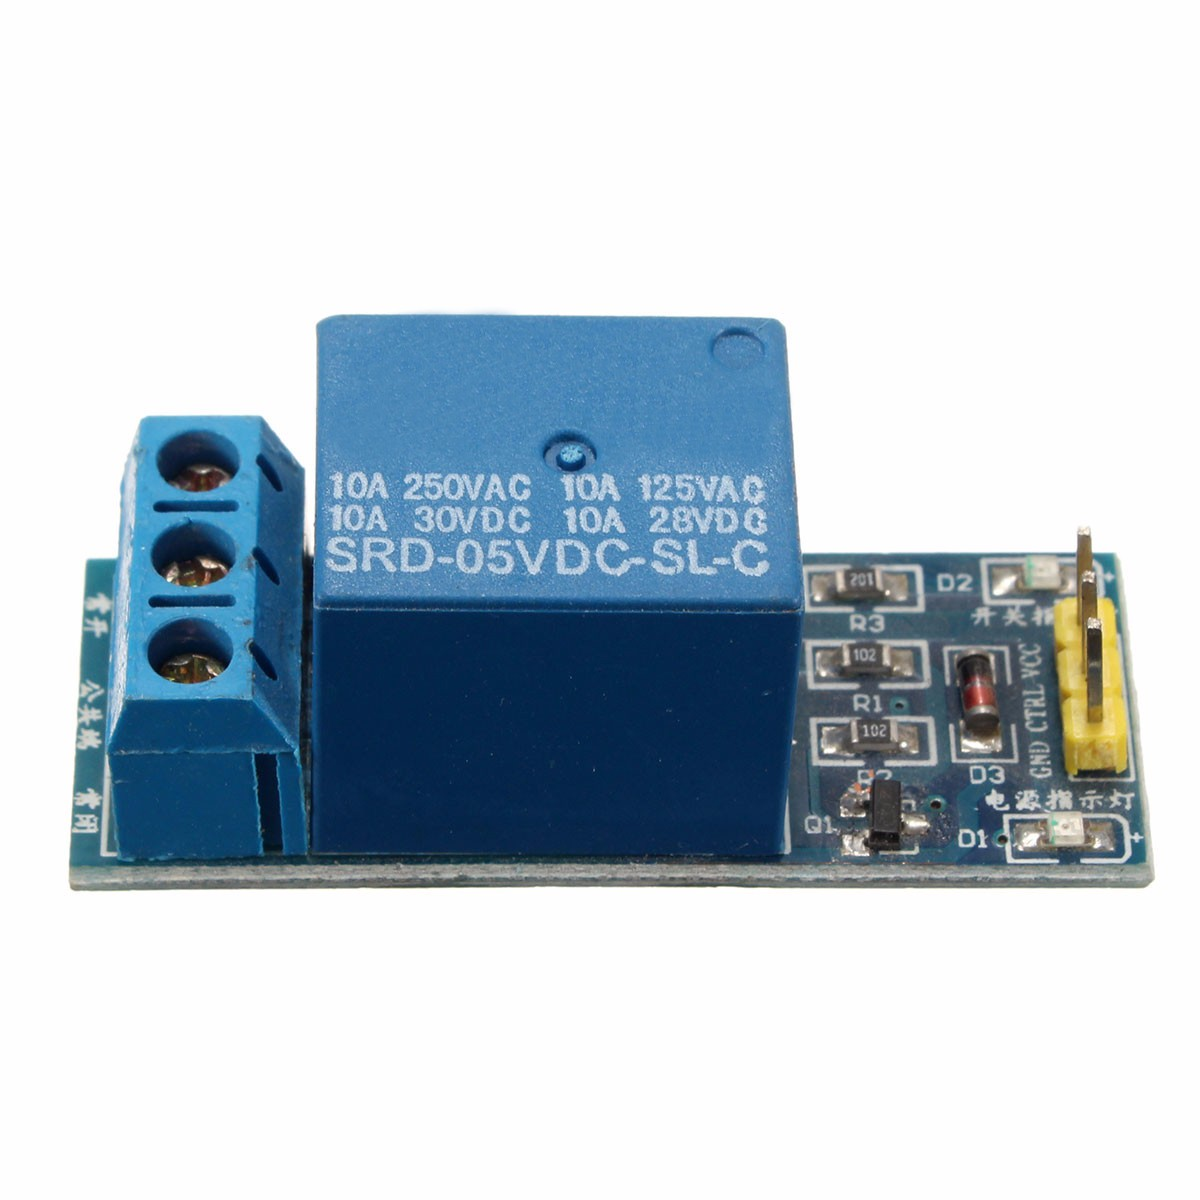 8 Channel Relay Interface Module5v Dc Module For Lpt Board 5v 1 Pic Avr Dsp Arm Mcu